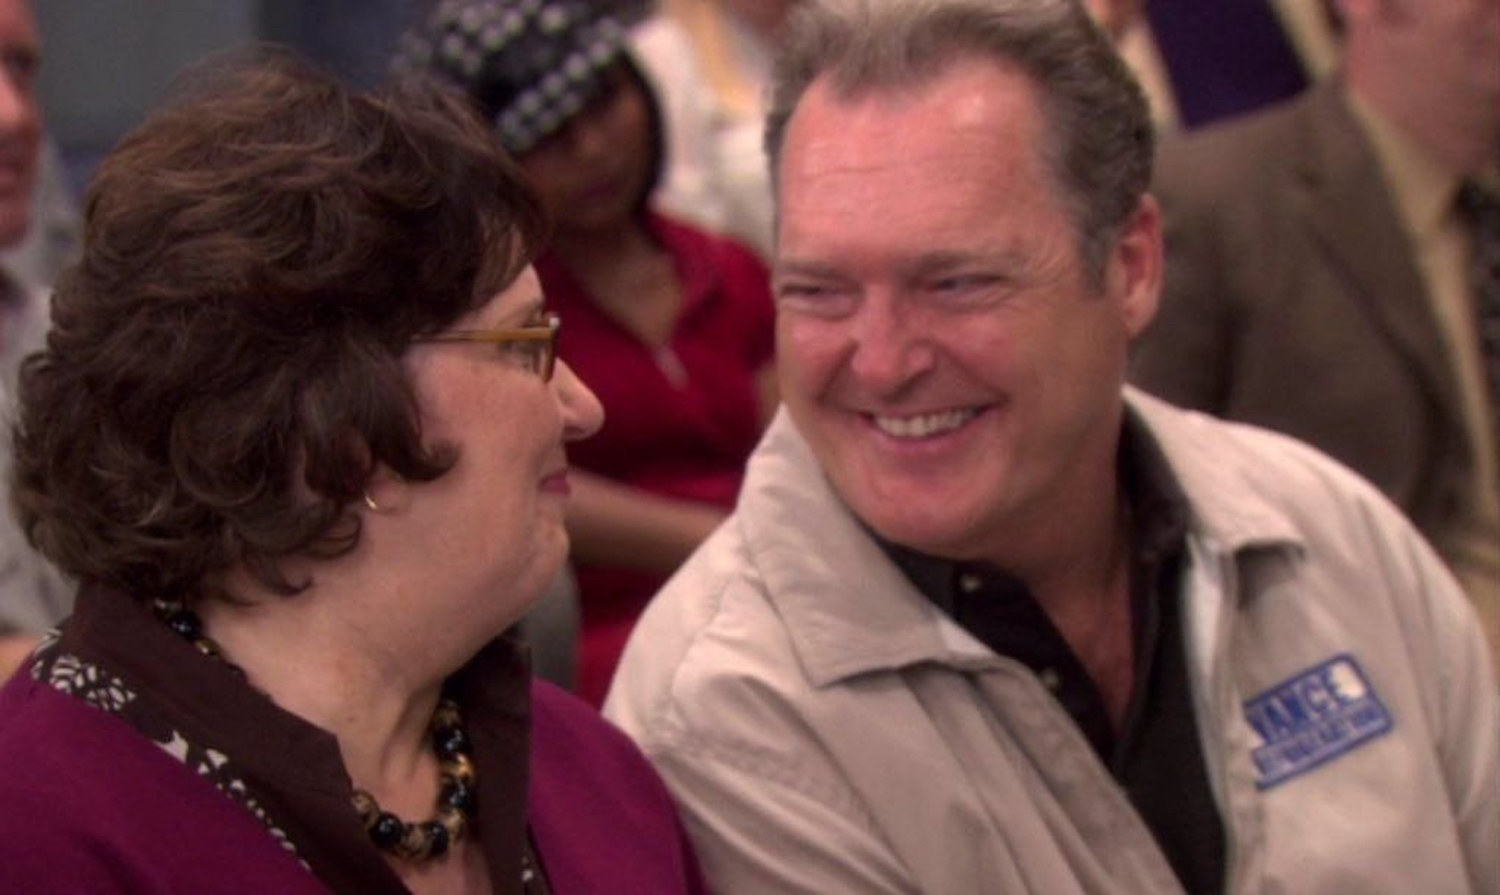 Bob and Phyllis staring into each other's eyes and smiling